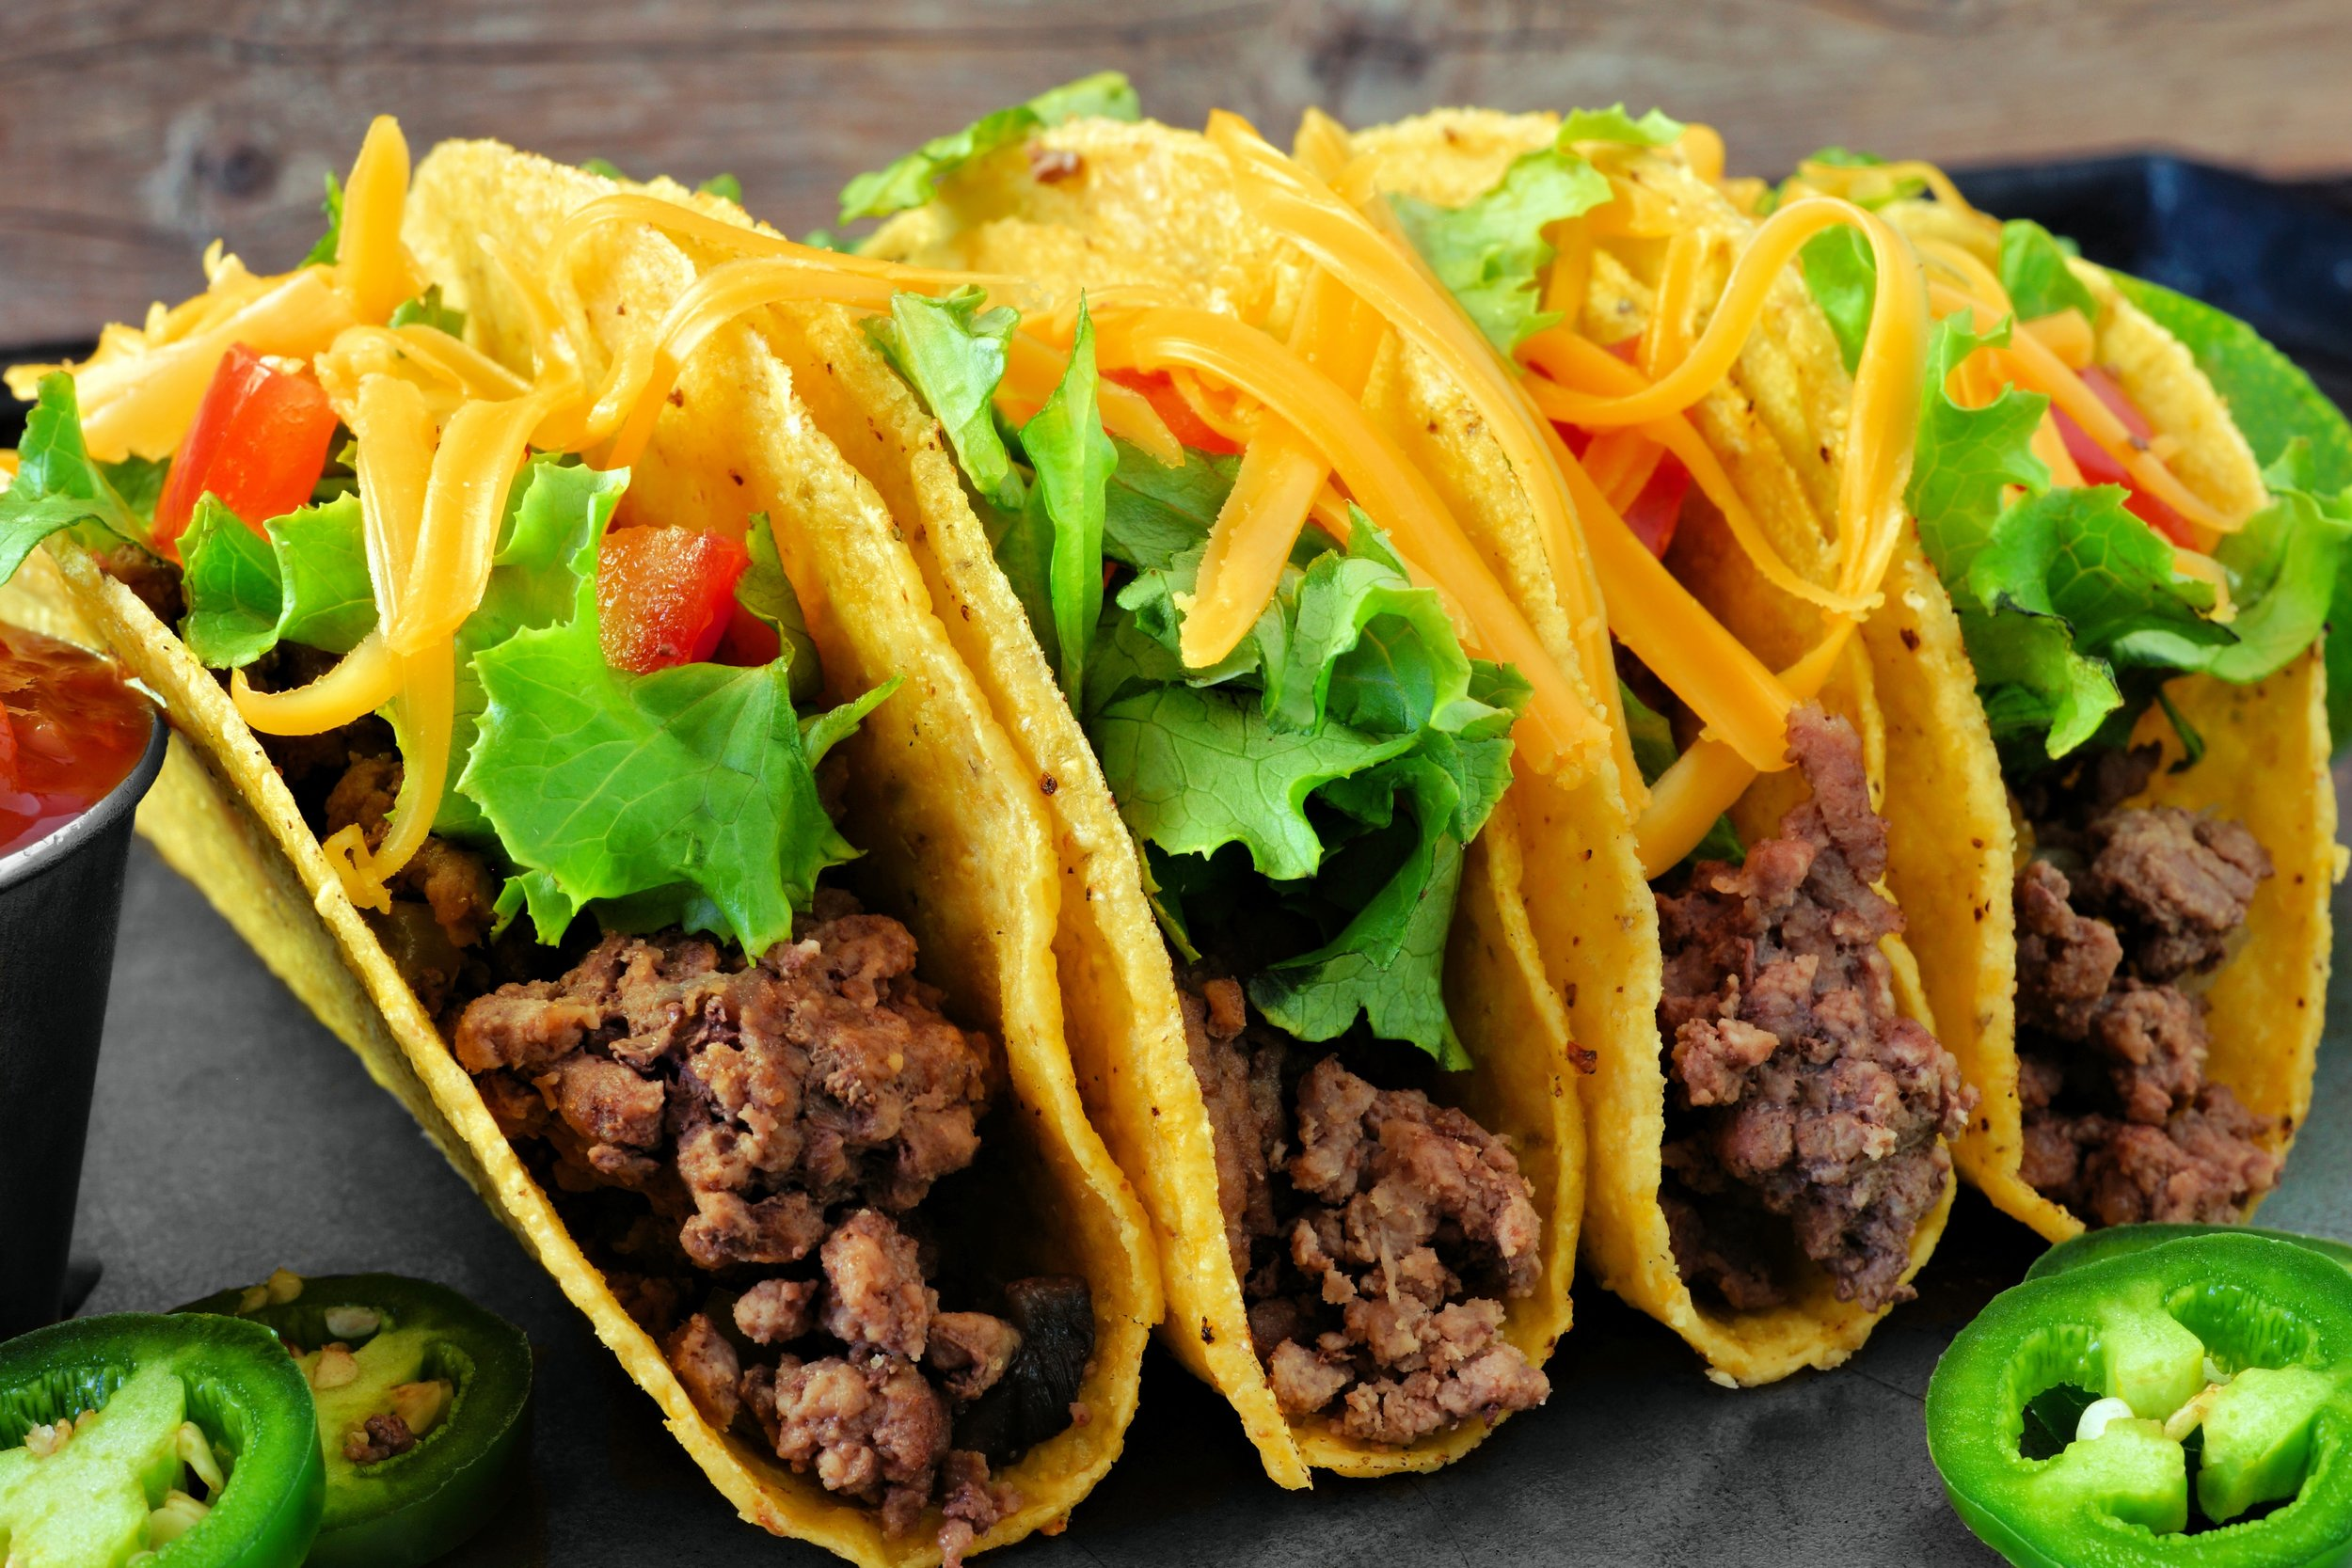 Mexican - Corn tortillas or taco shells with meat (no onion or garlic), tomato, lettuce, and shredded cheese (limit amount)Rice and/or tortilla chips on side